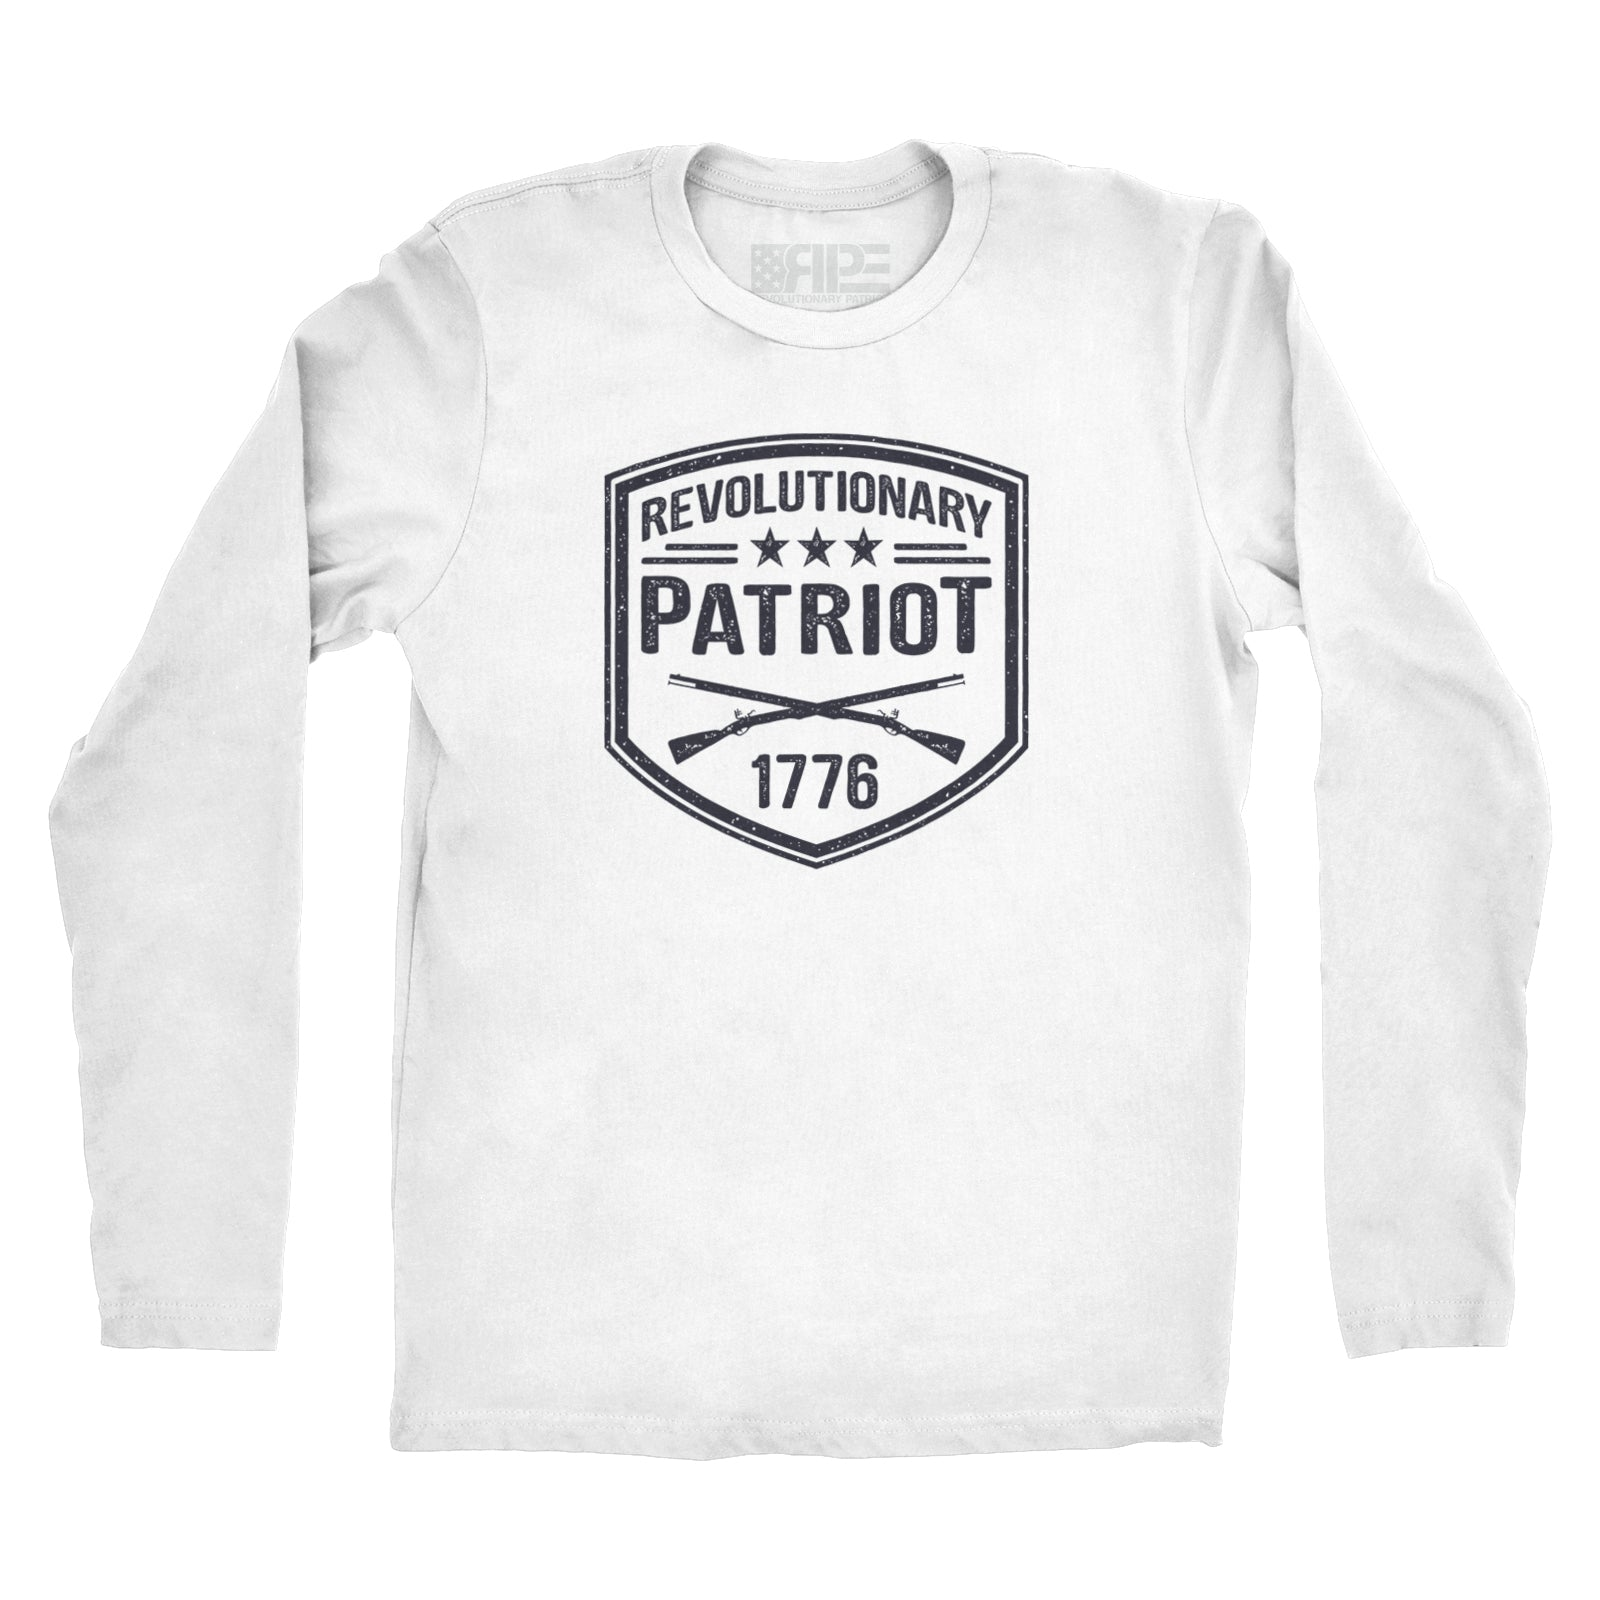 Revolutionary Patriot Long Sleeve (White) - Revolutionary Patriot